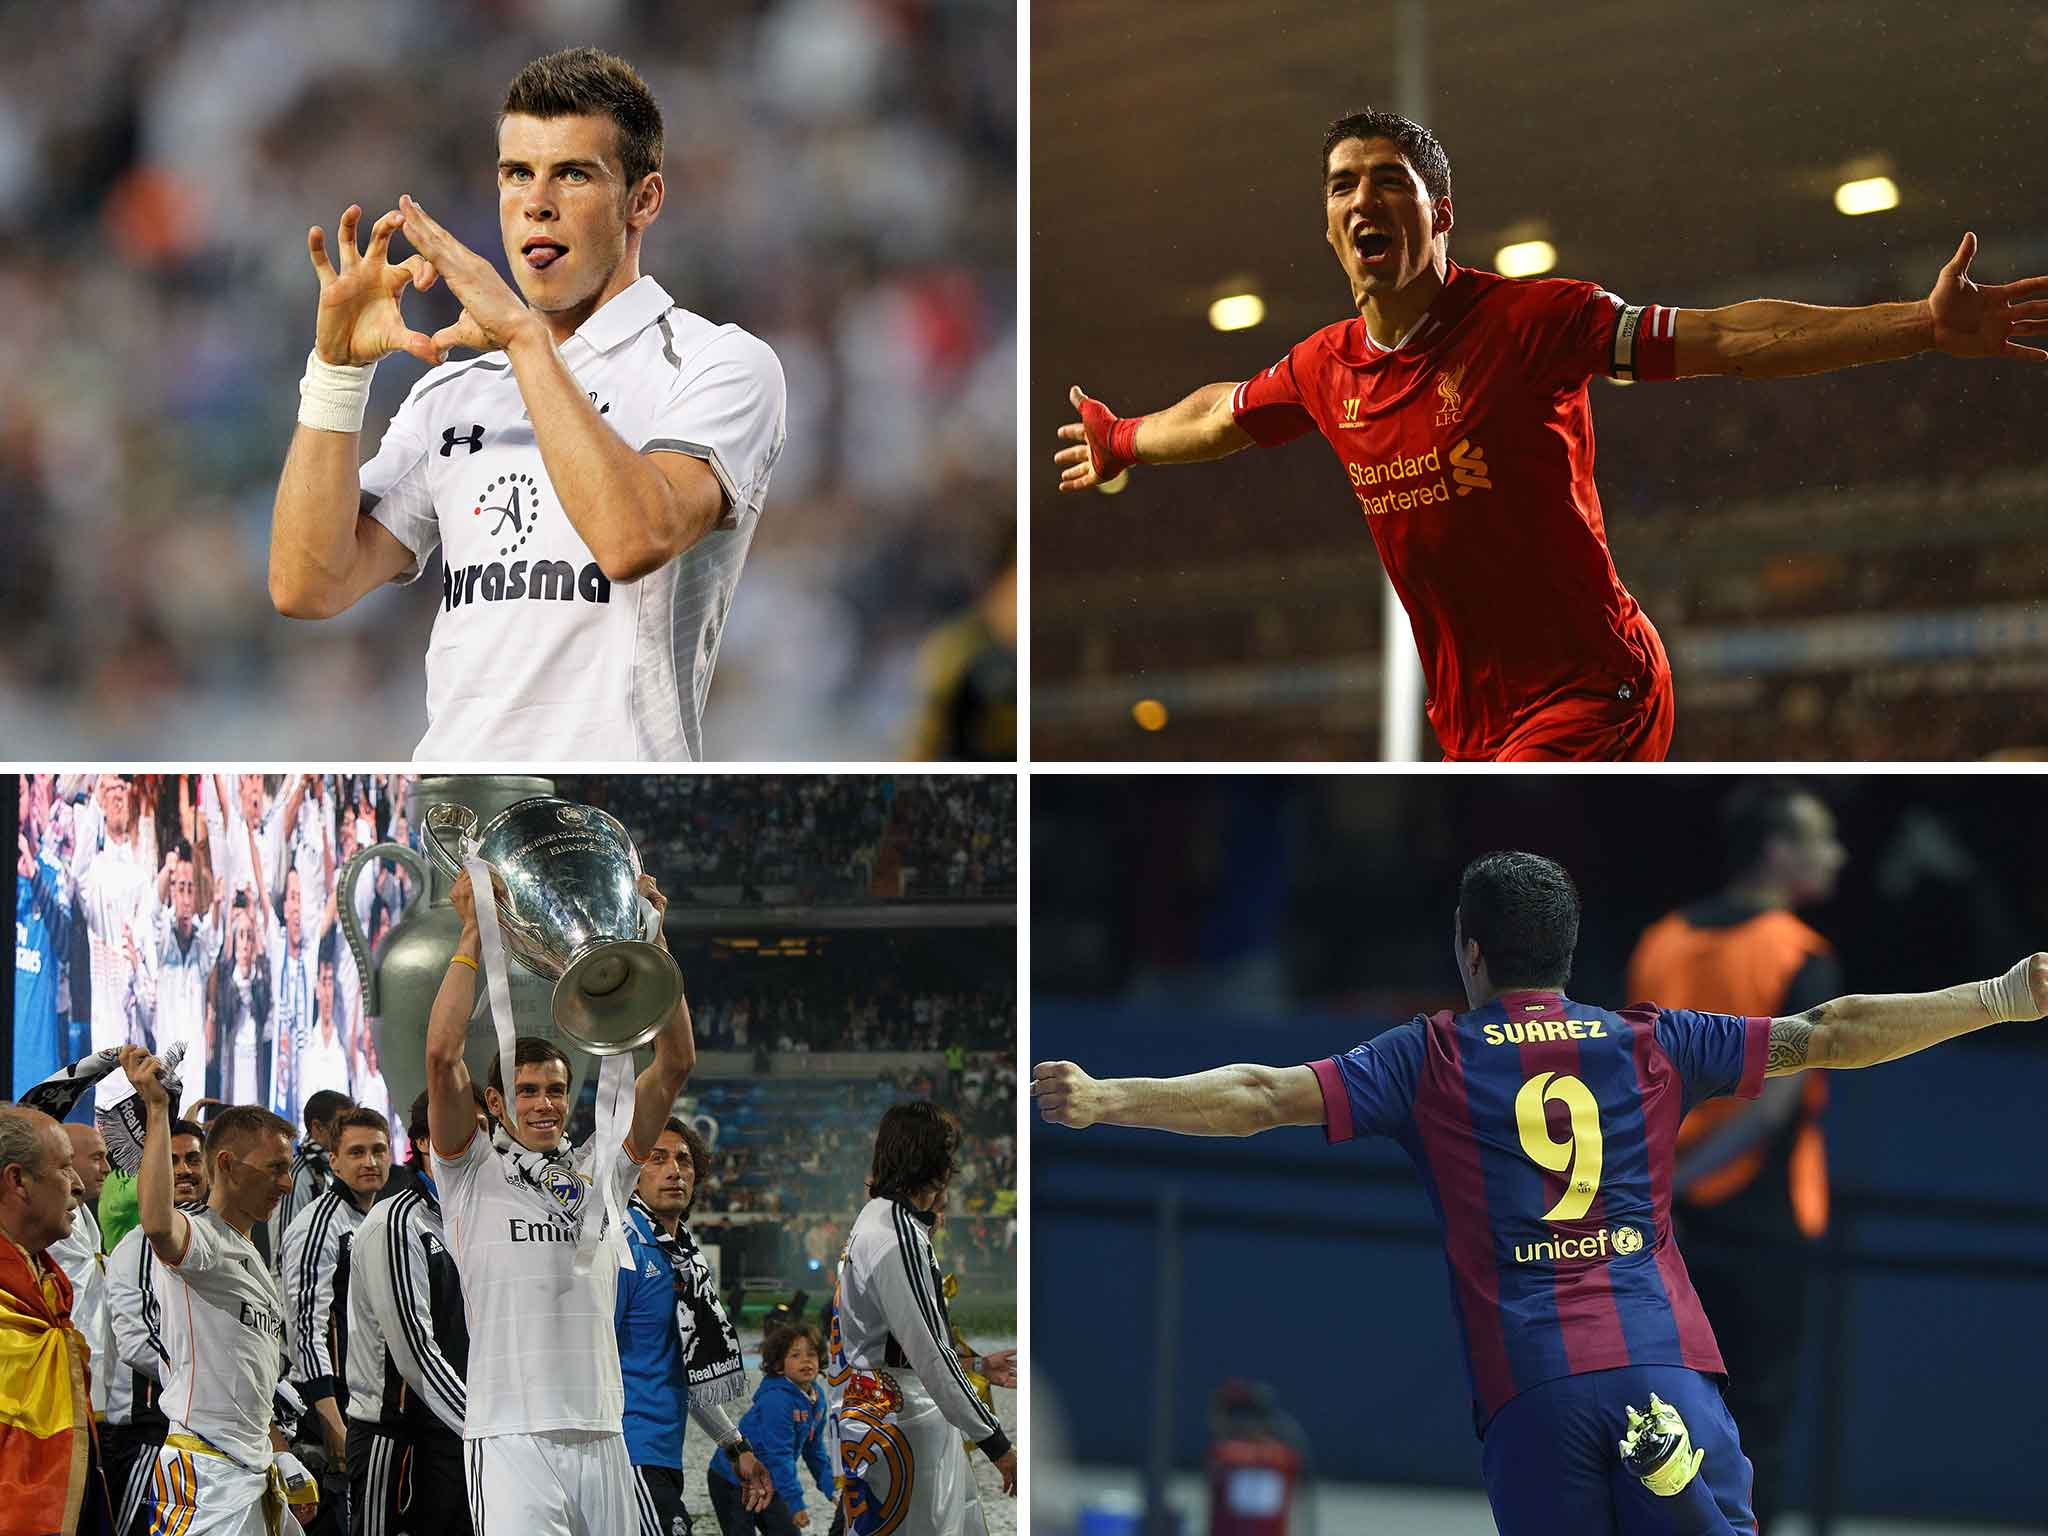 Luis Suarez channels his inner Gareth Bale to win Champions League for Barcelona less than a year after leaving Liverpool